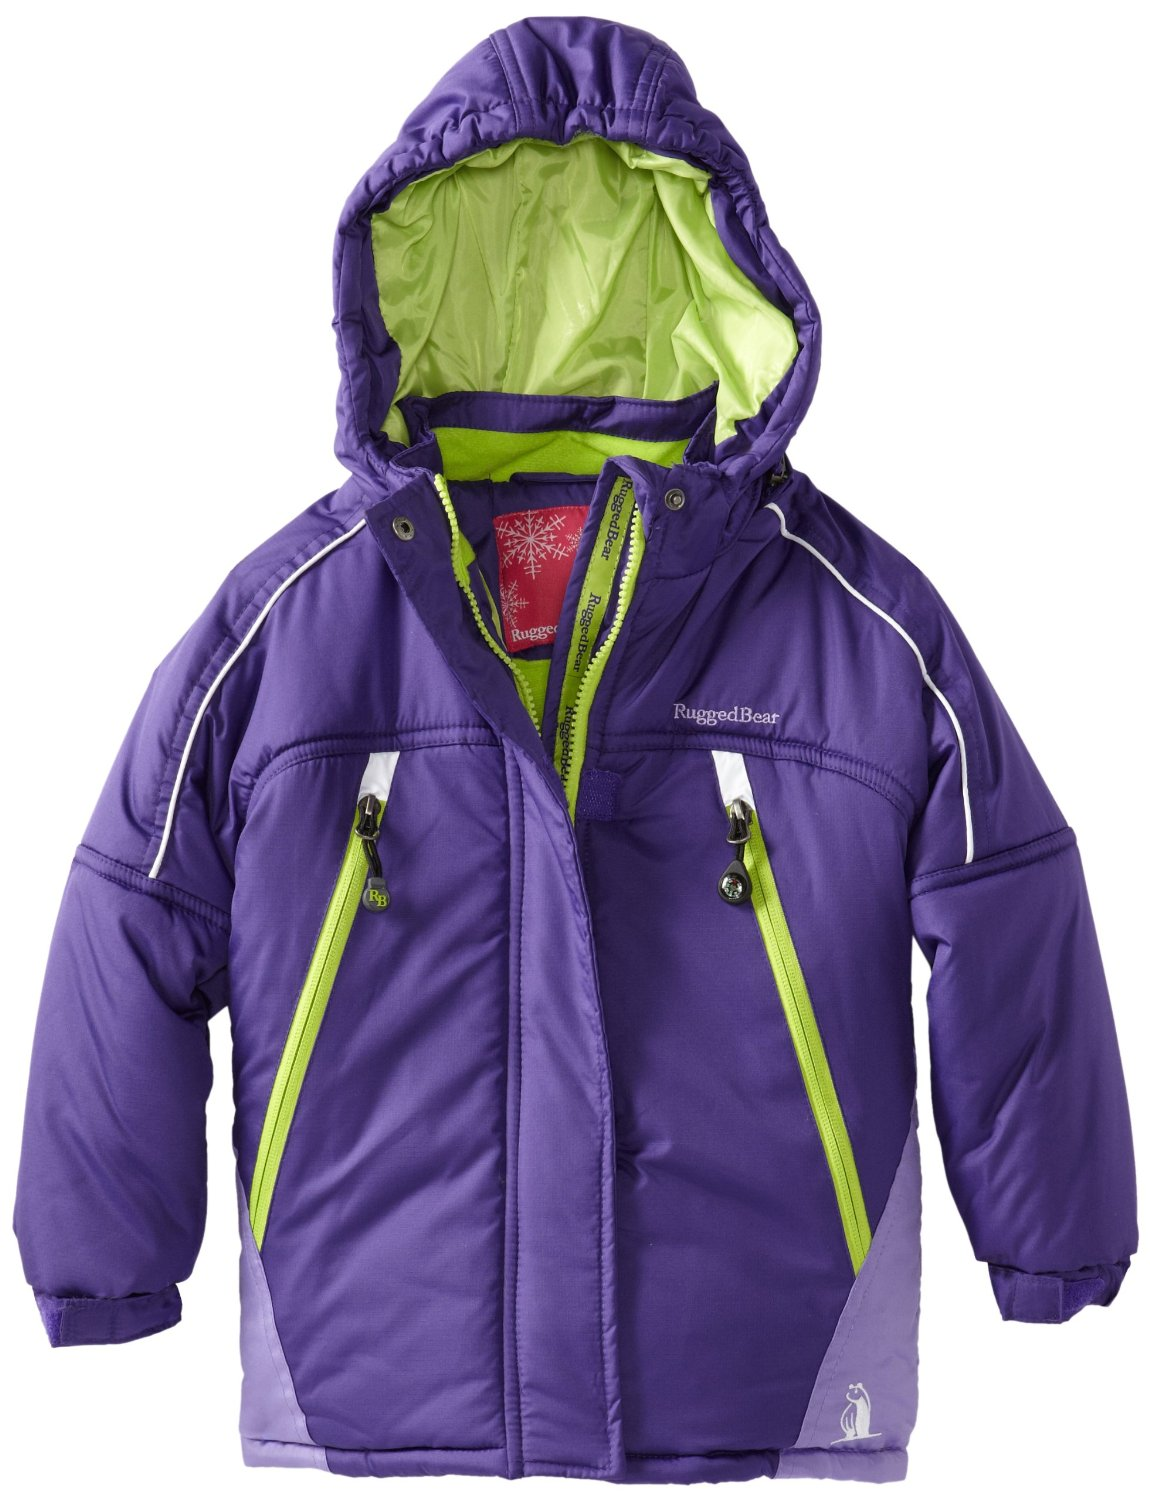 Rugged Bear Toddler Girls Color Block Purple Snow Ski Jacket / Coat 2T 3T 4T at Sears.com